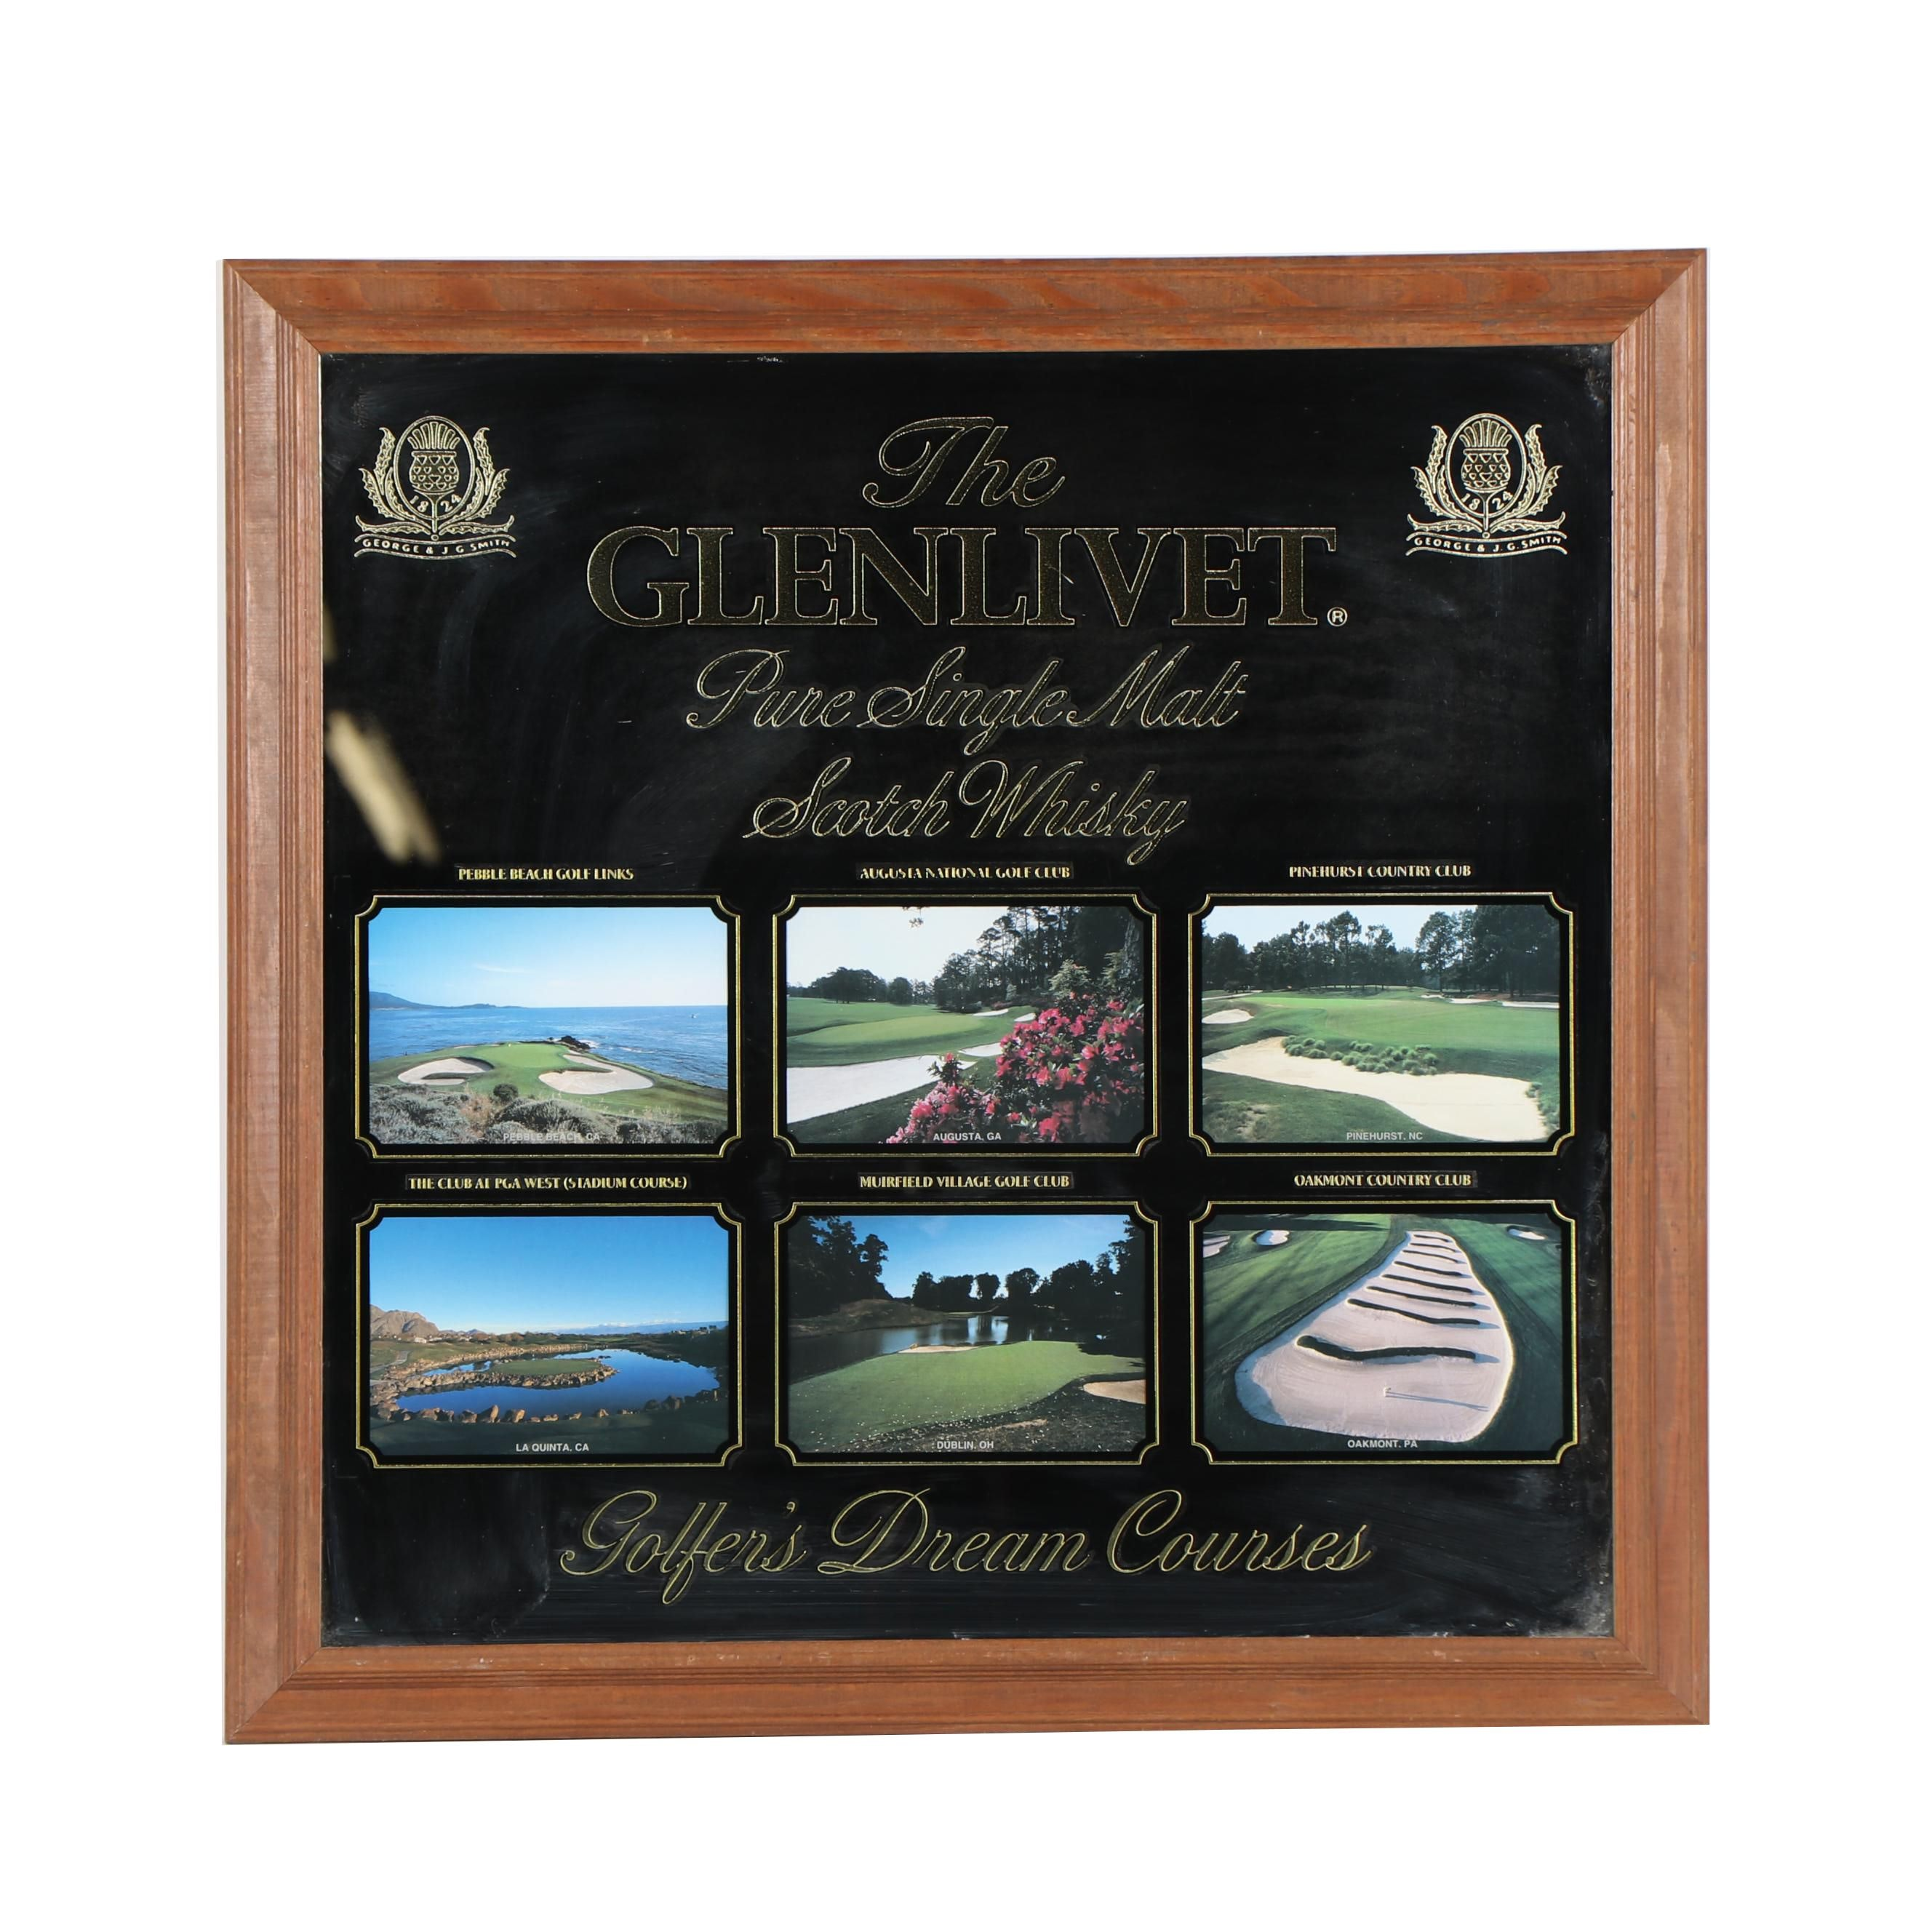 """The Glenlivet"" Scotch Whisky Mirror Featuring Golf Courses"